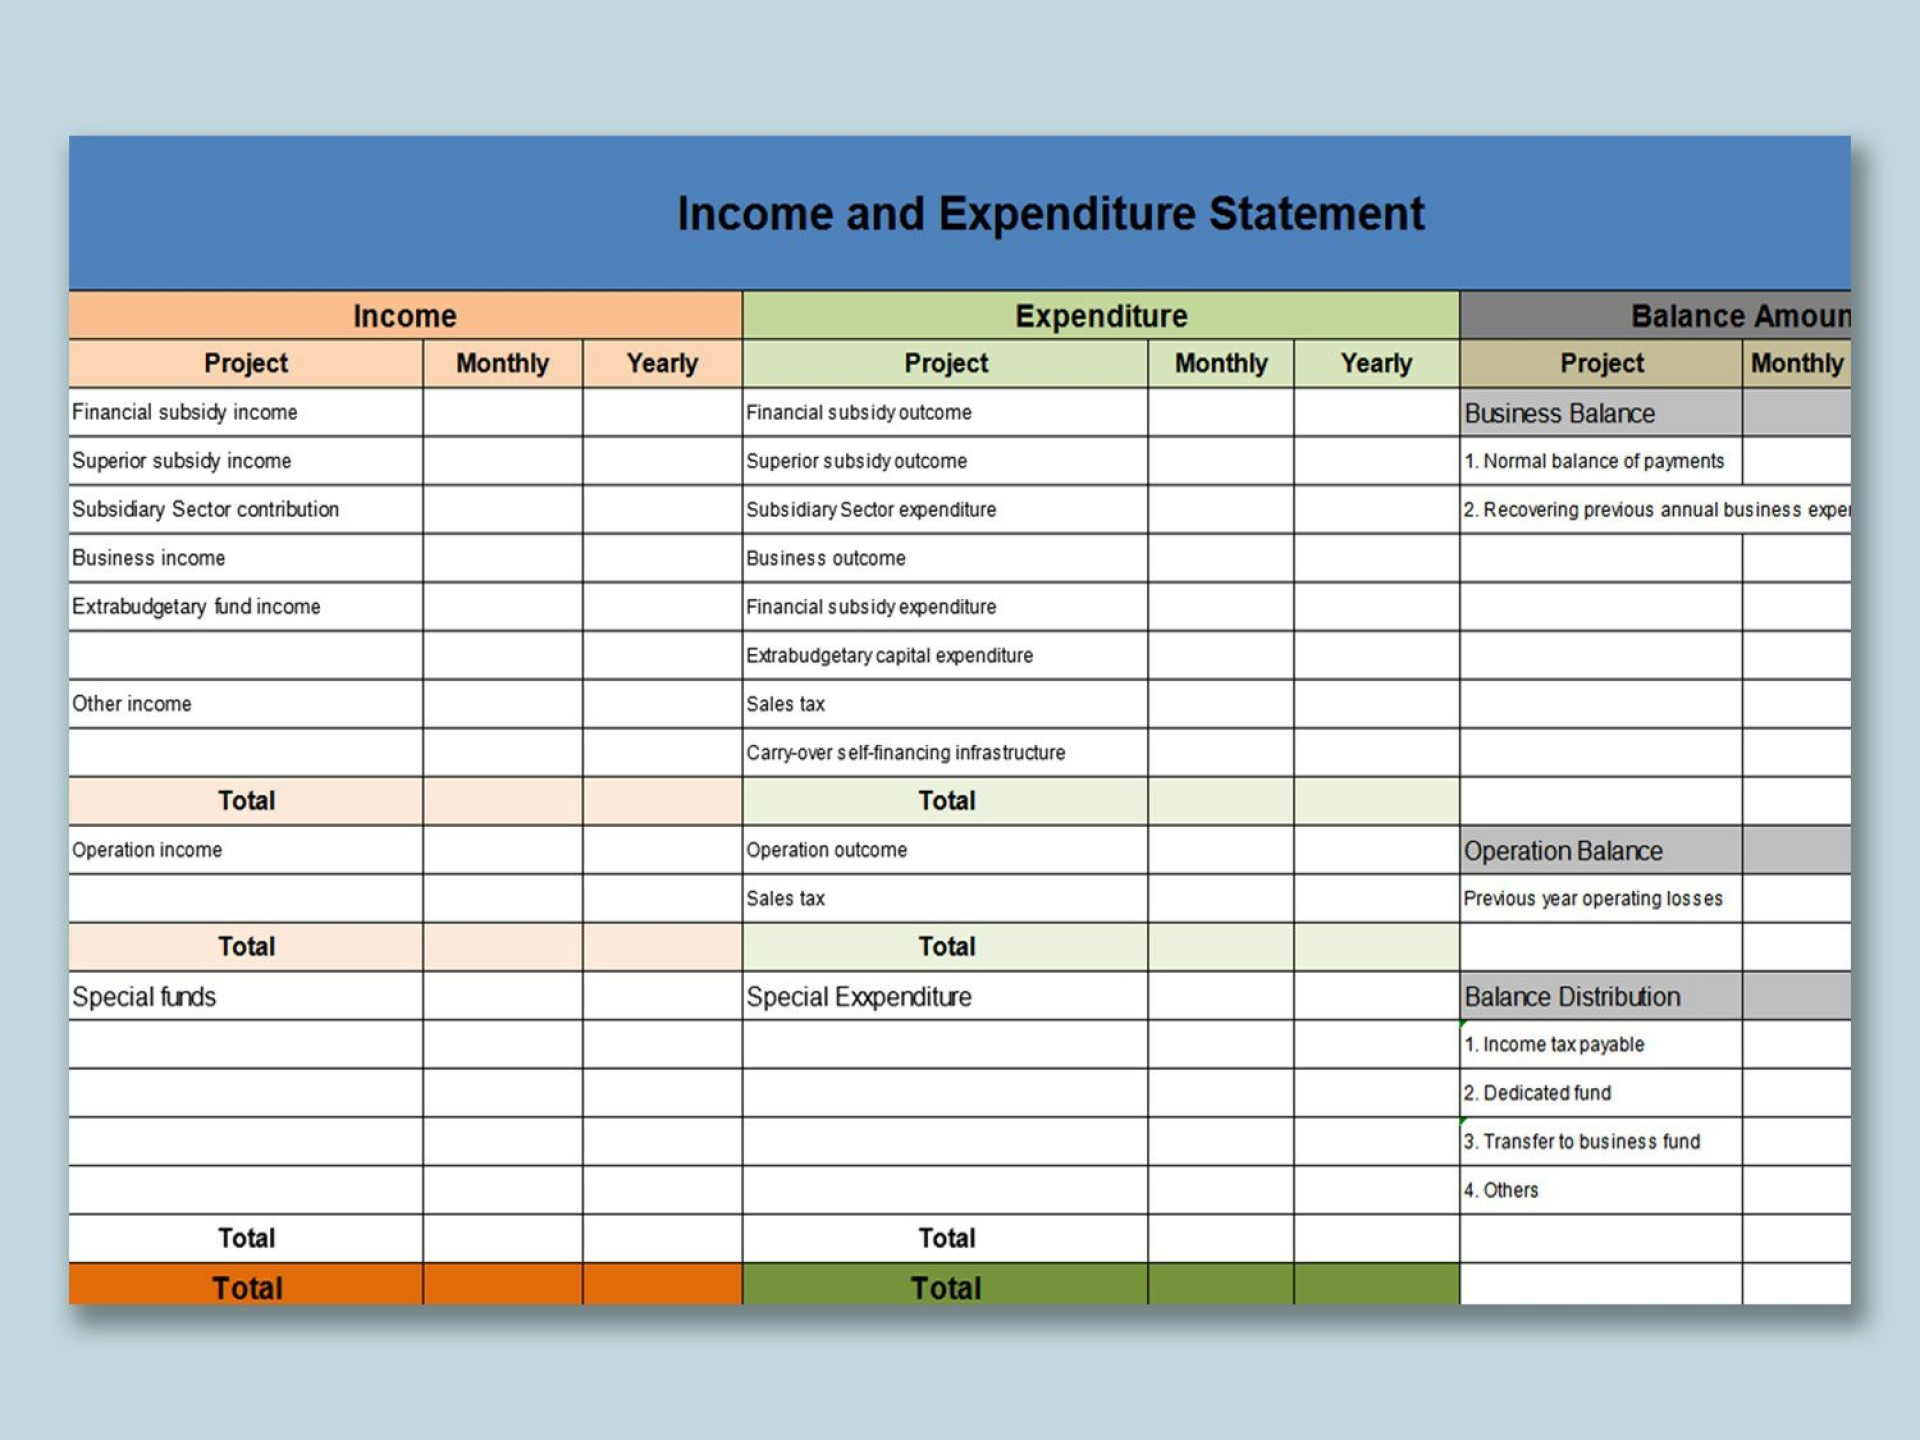 004 Breathtaking Monthly Income Statement Format Excel Free Download Concept 1920